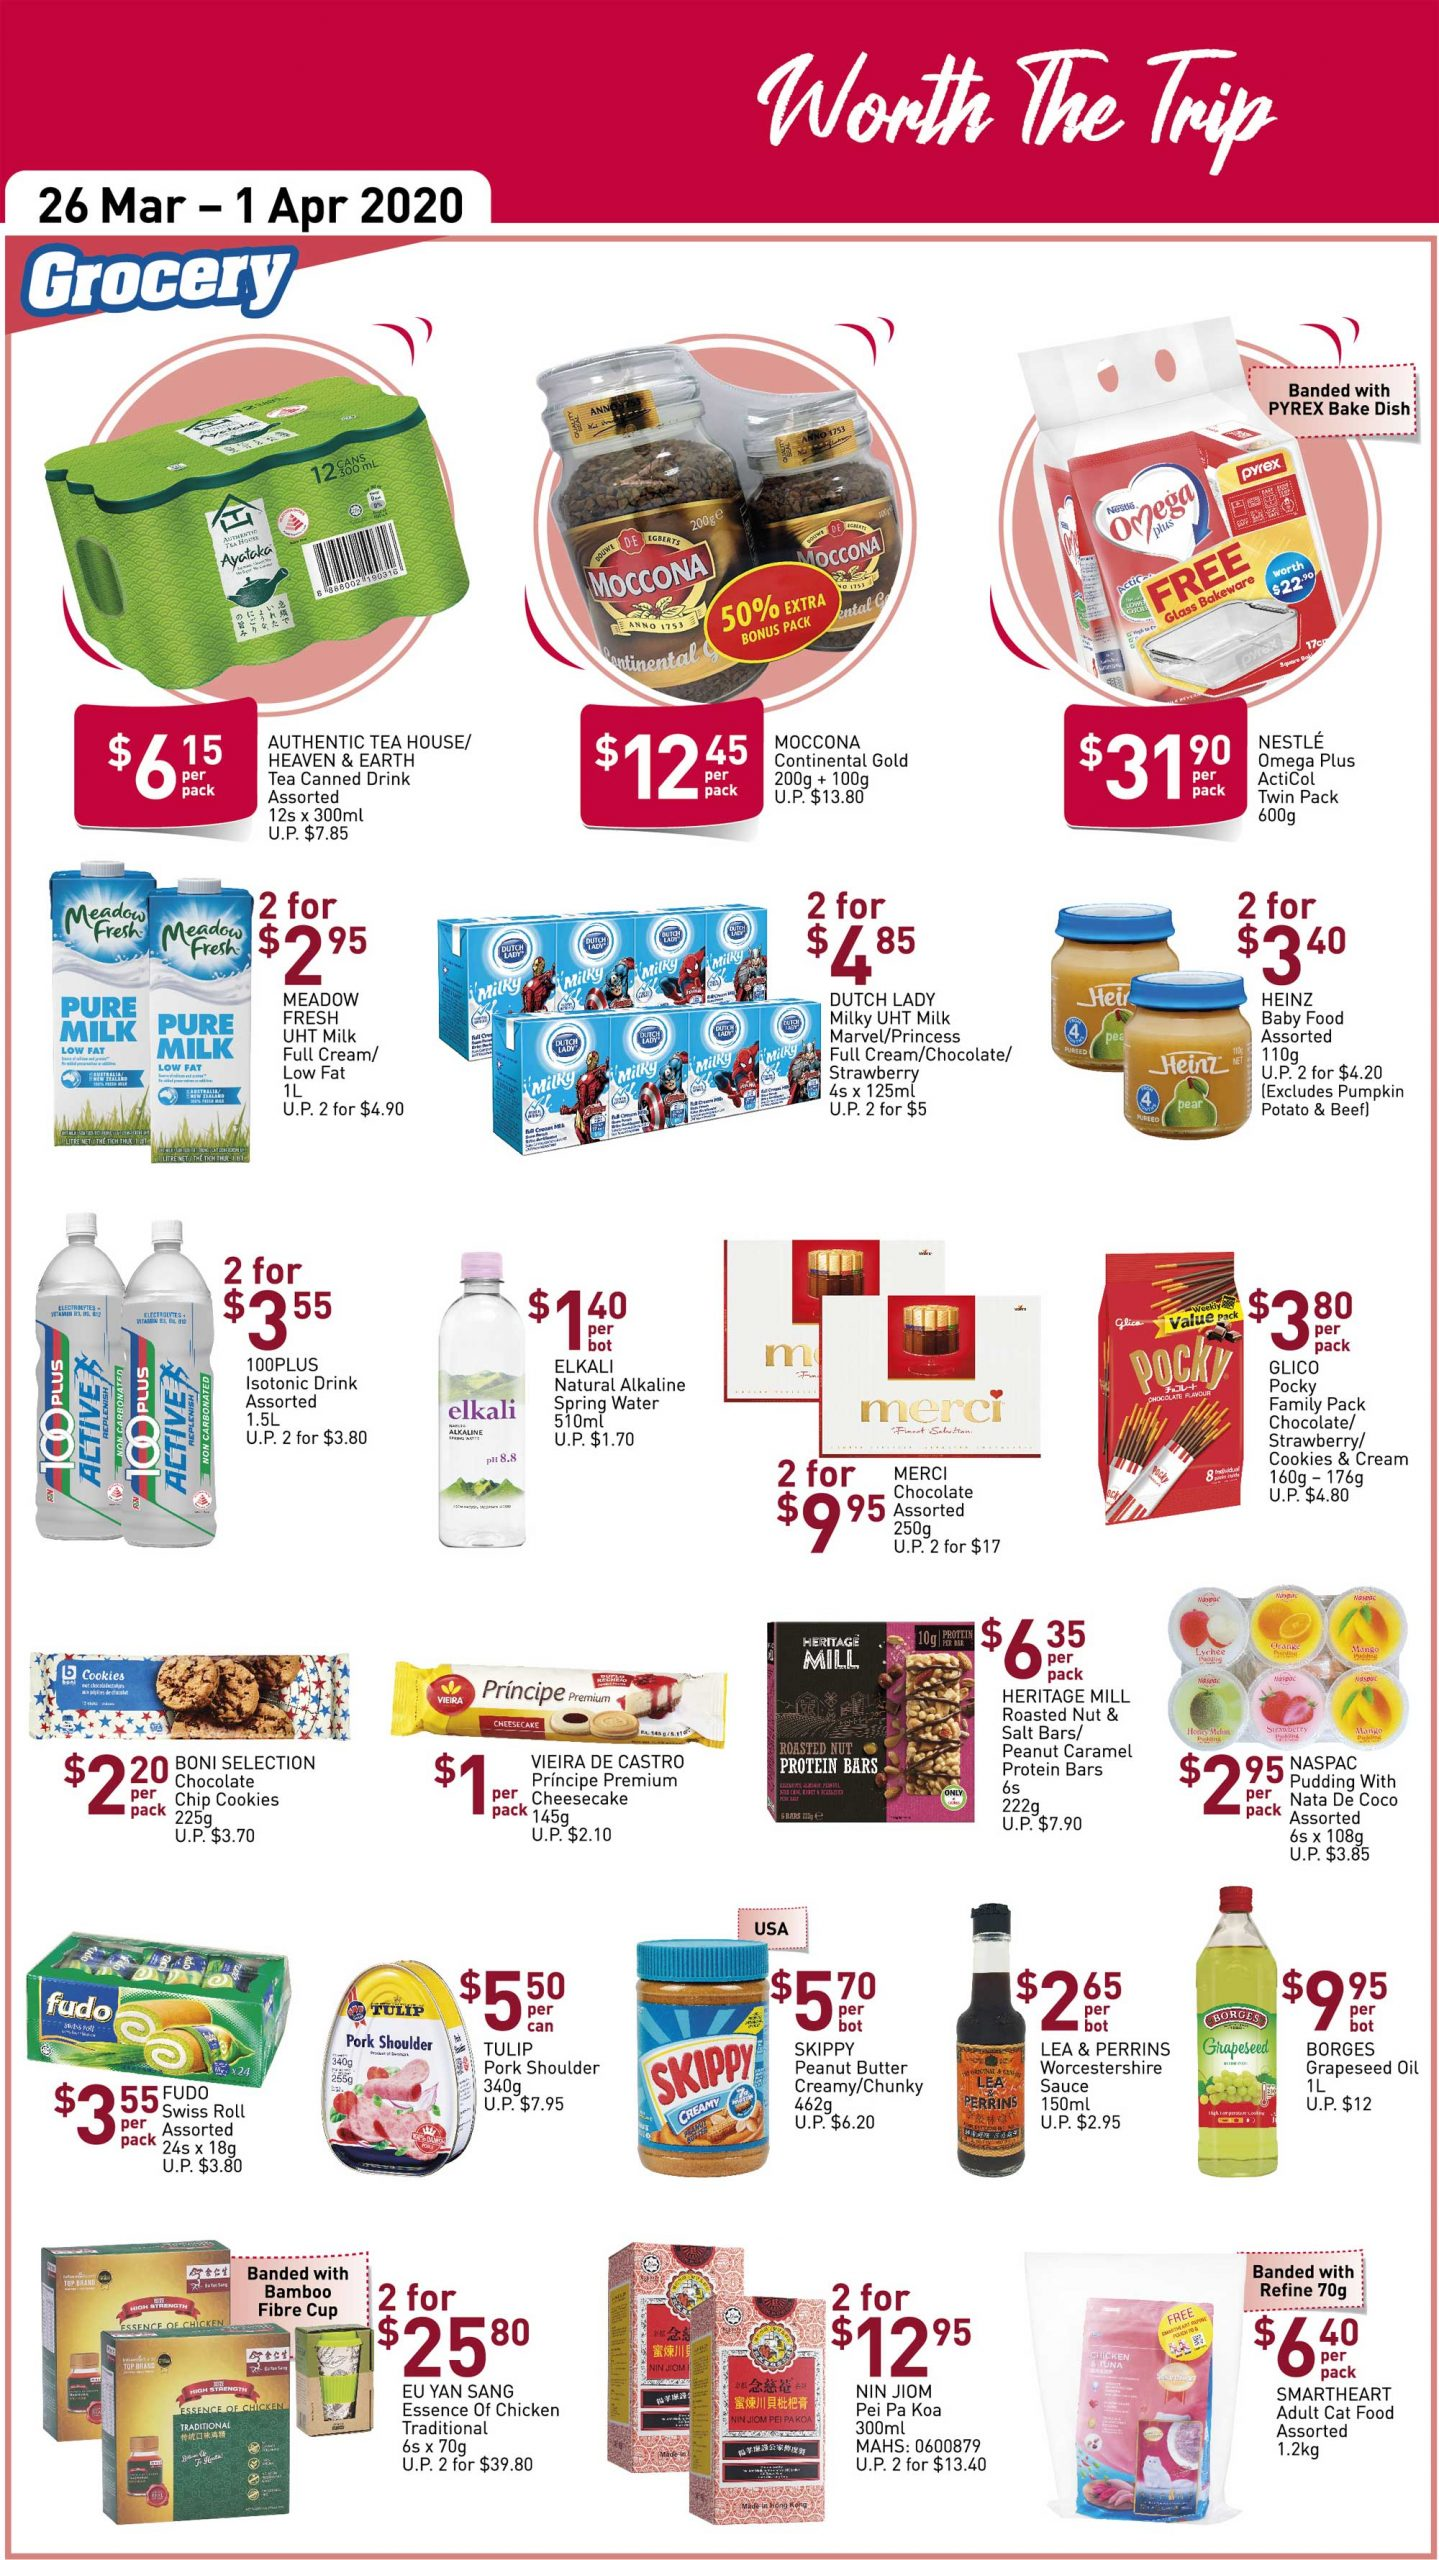 NTUC FairPrice SG Your Weekly Saver Promotion 26 Mar - 1 Apr 2020 | Why Not Deals 7 & Promotions